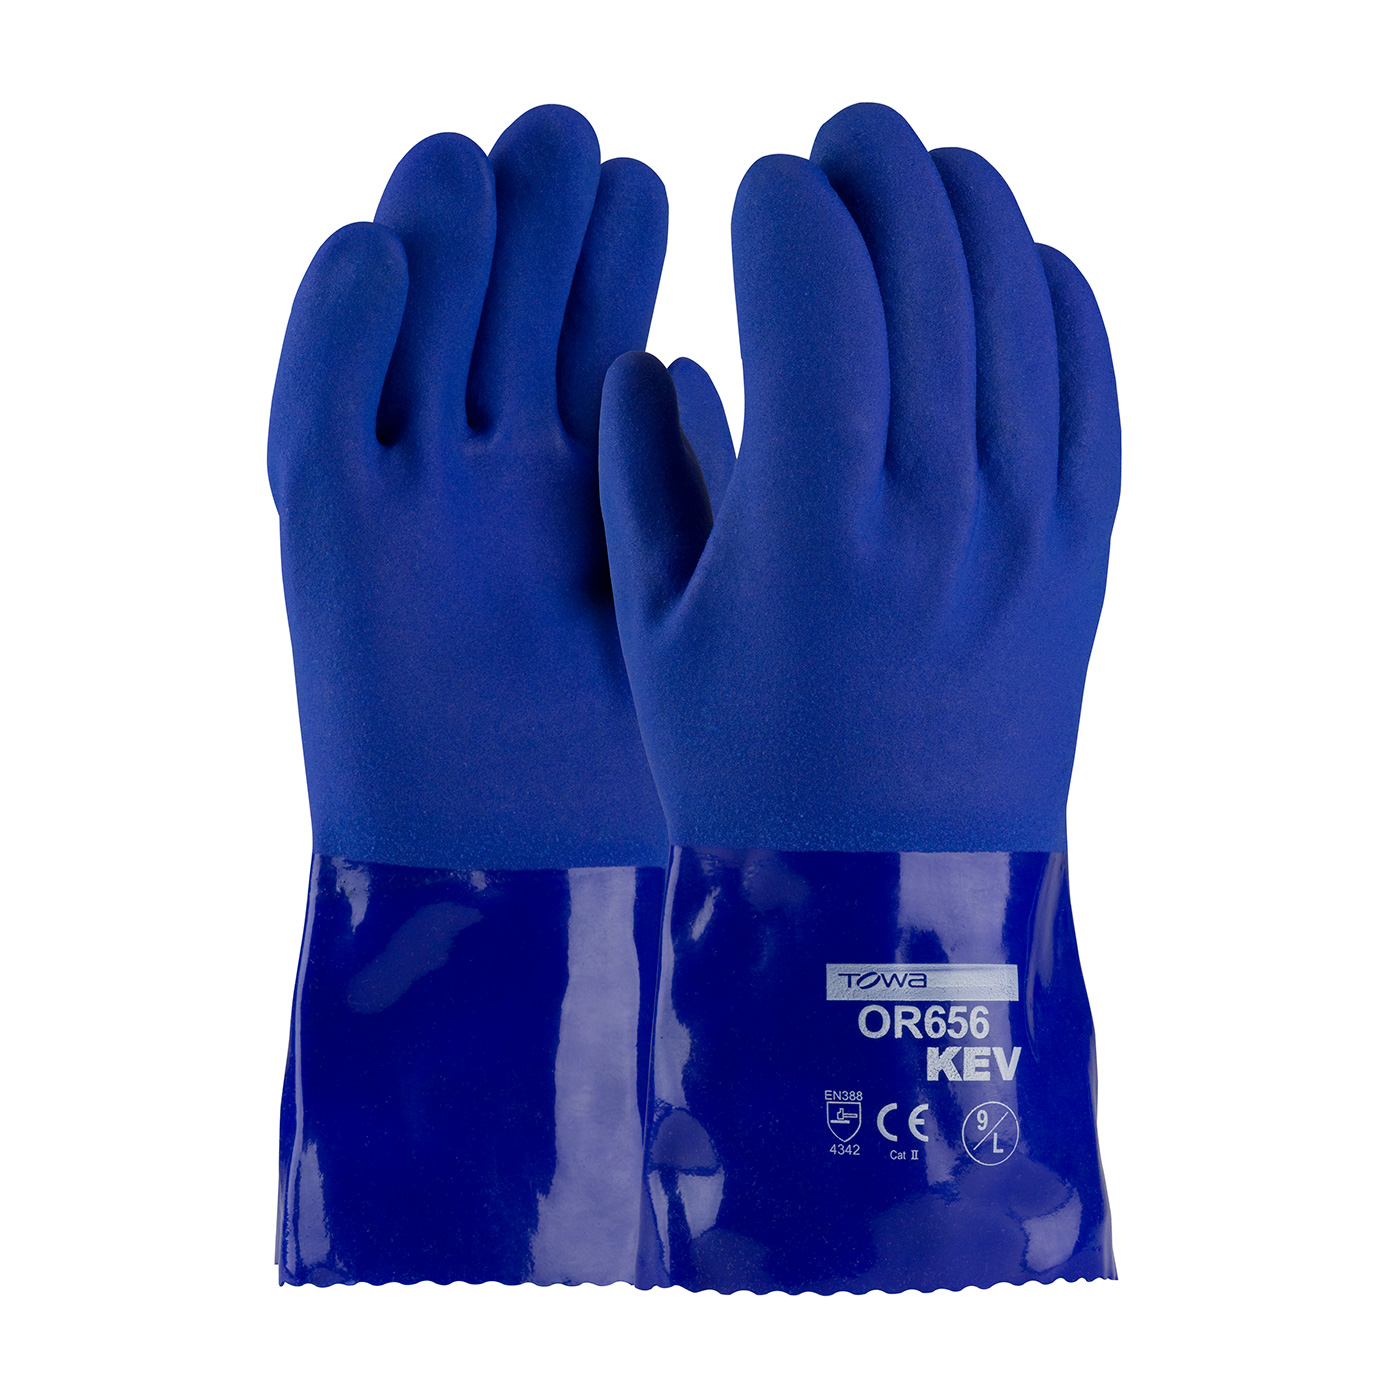 Oil Resistant Gloves >> PVC Coated 12 Inch Cut Resistant Utility Gloves | Cut Resistant Gloves | Gloves-Online Industrial